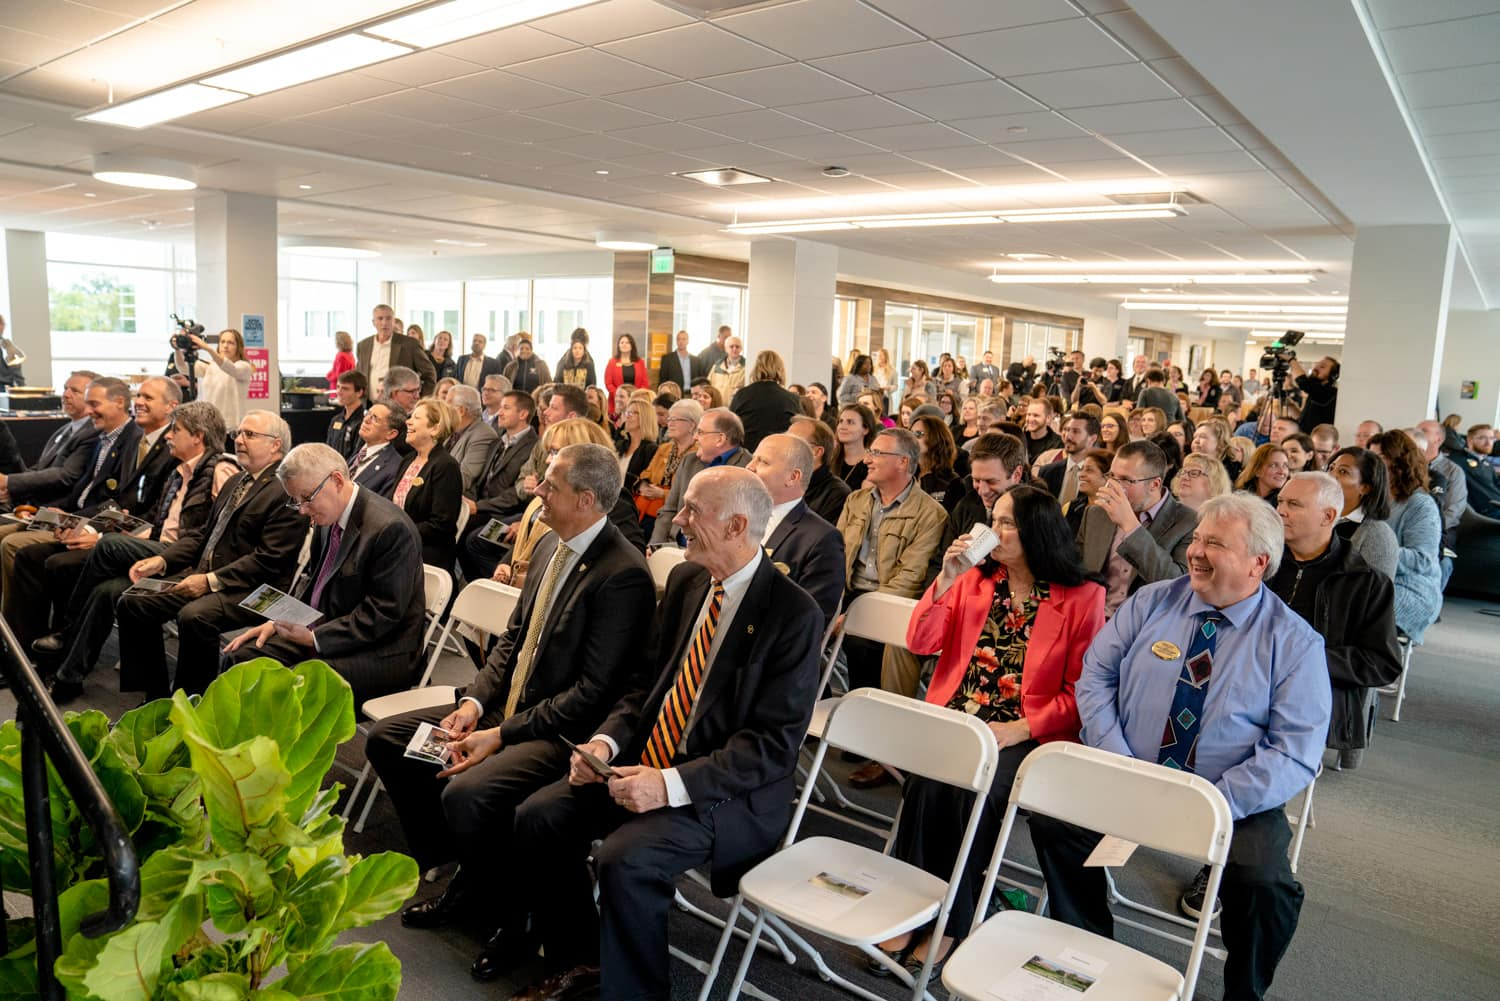 Crowd listening to speakers at grand opening of hillcrest hall at Oakland University